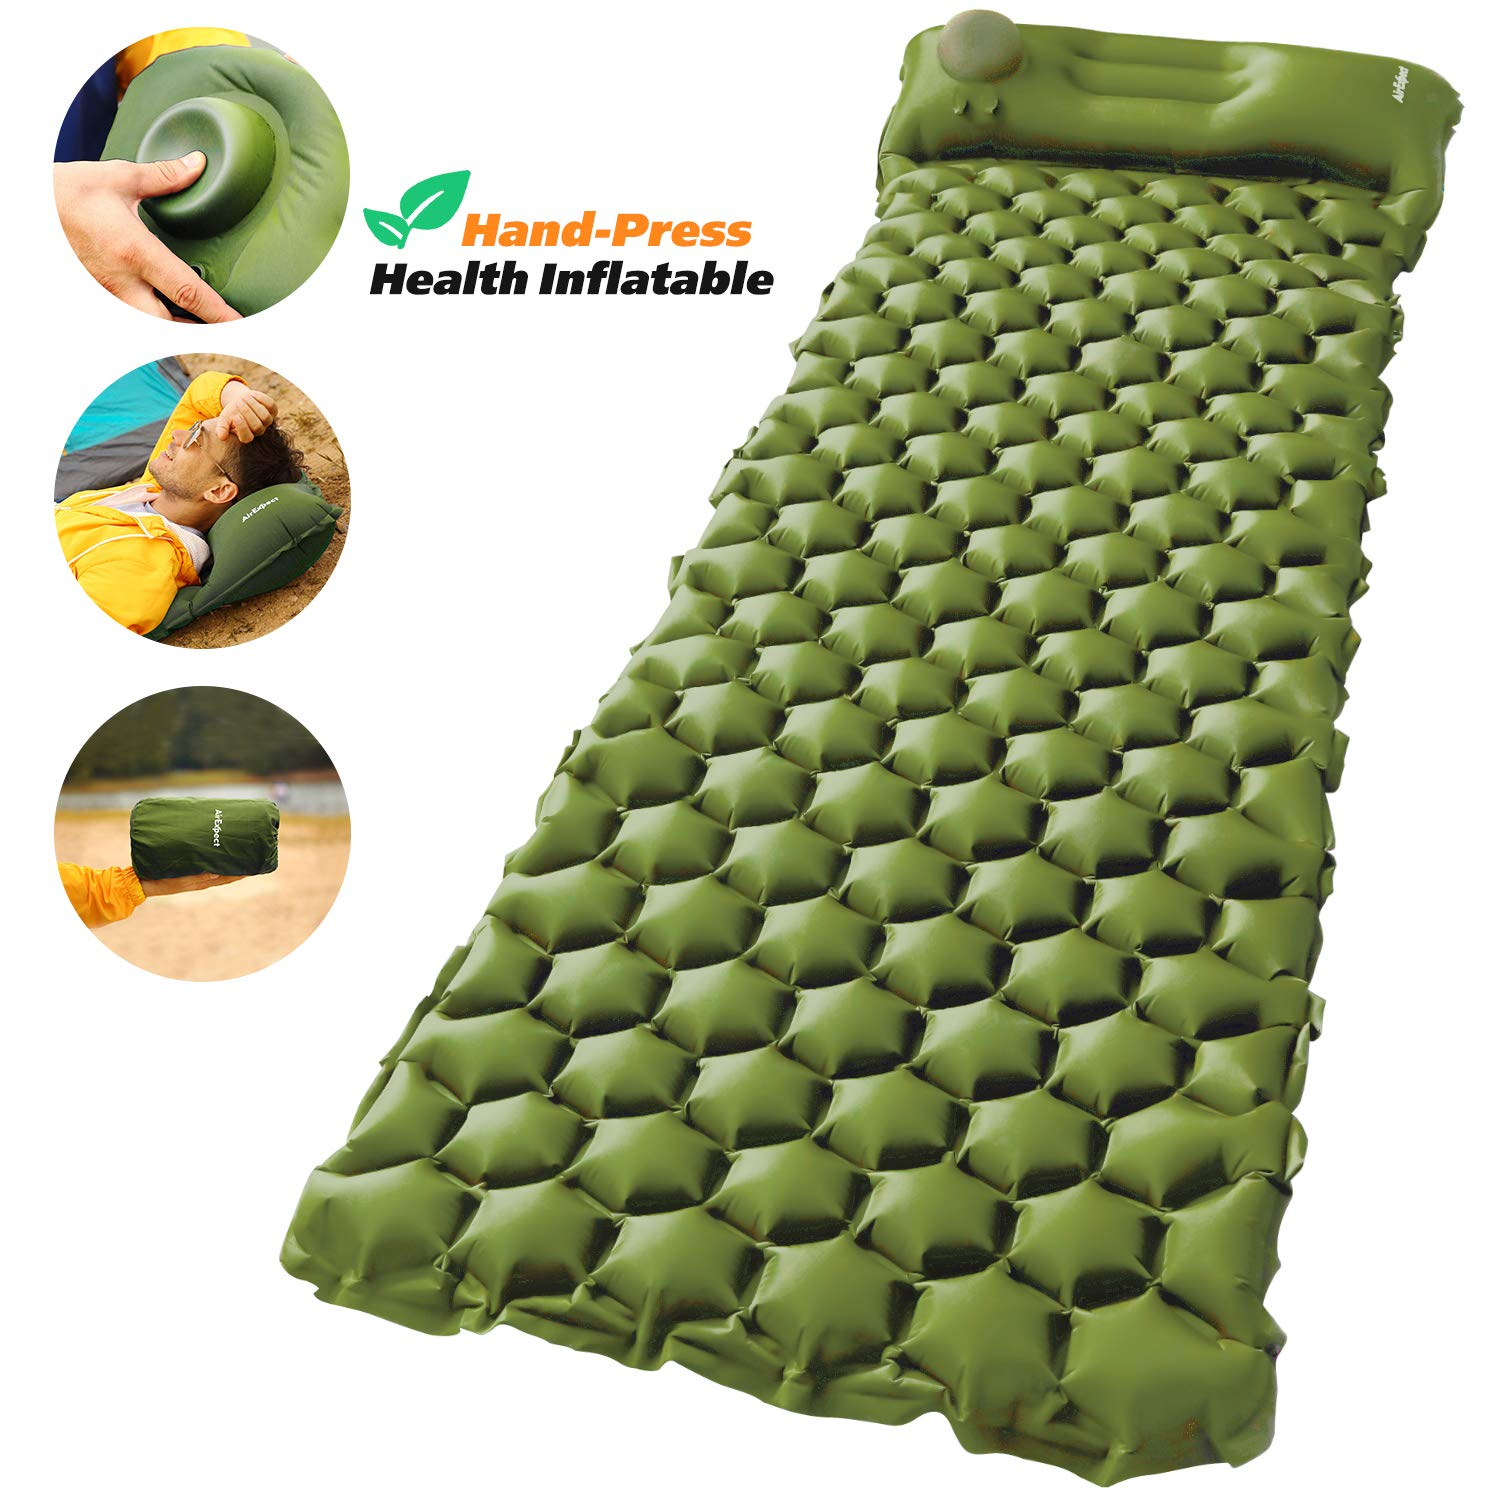 AirExpect Camping Sleeping Pad with Built-in Pump Upgraded Inflatable Camping Mat with Pillow for Backpacking, Traveling, Hiking, Durable Waterproof Air Mattress Compact Ultralight Hiking Pad by AirExpect